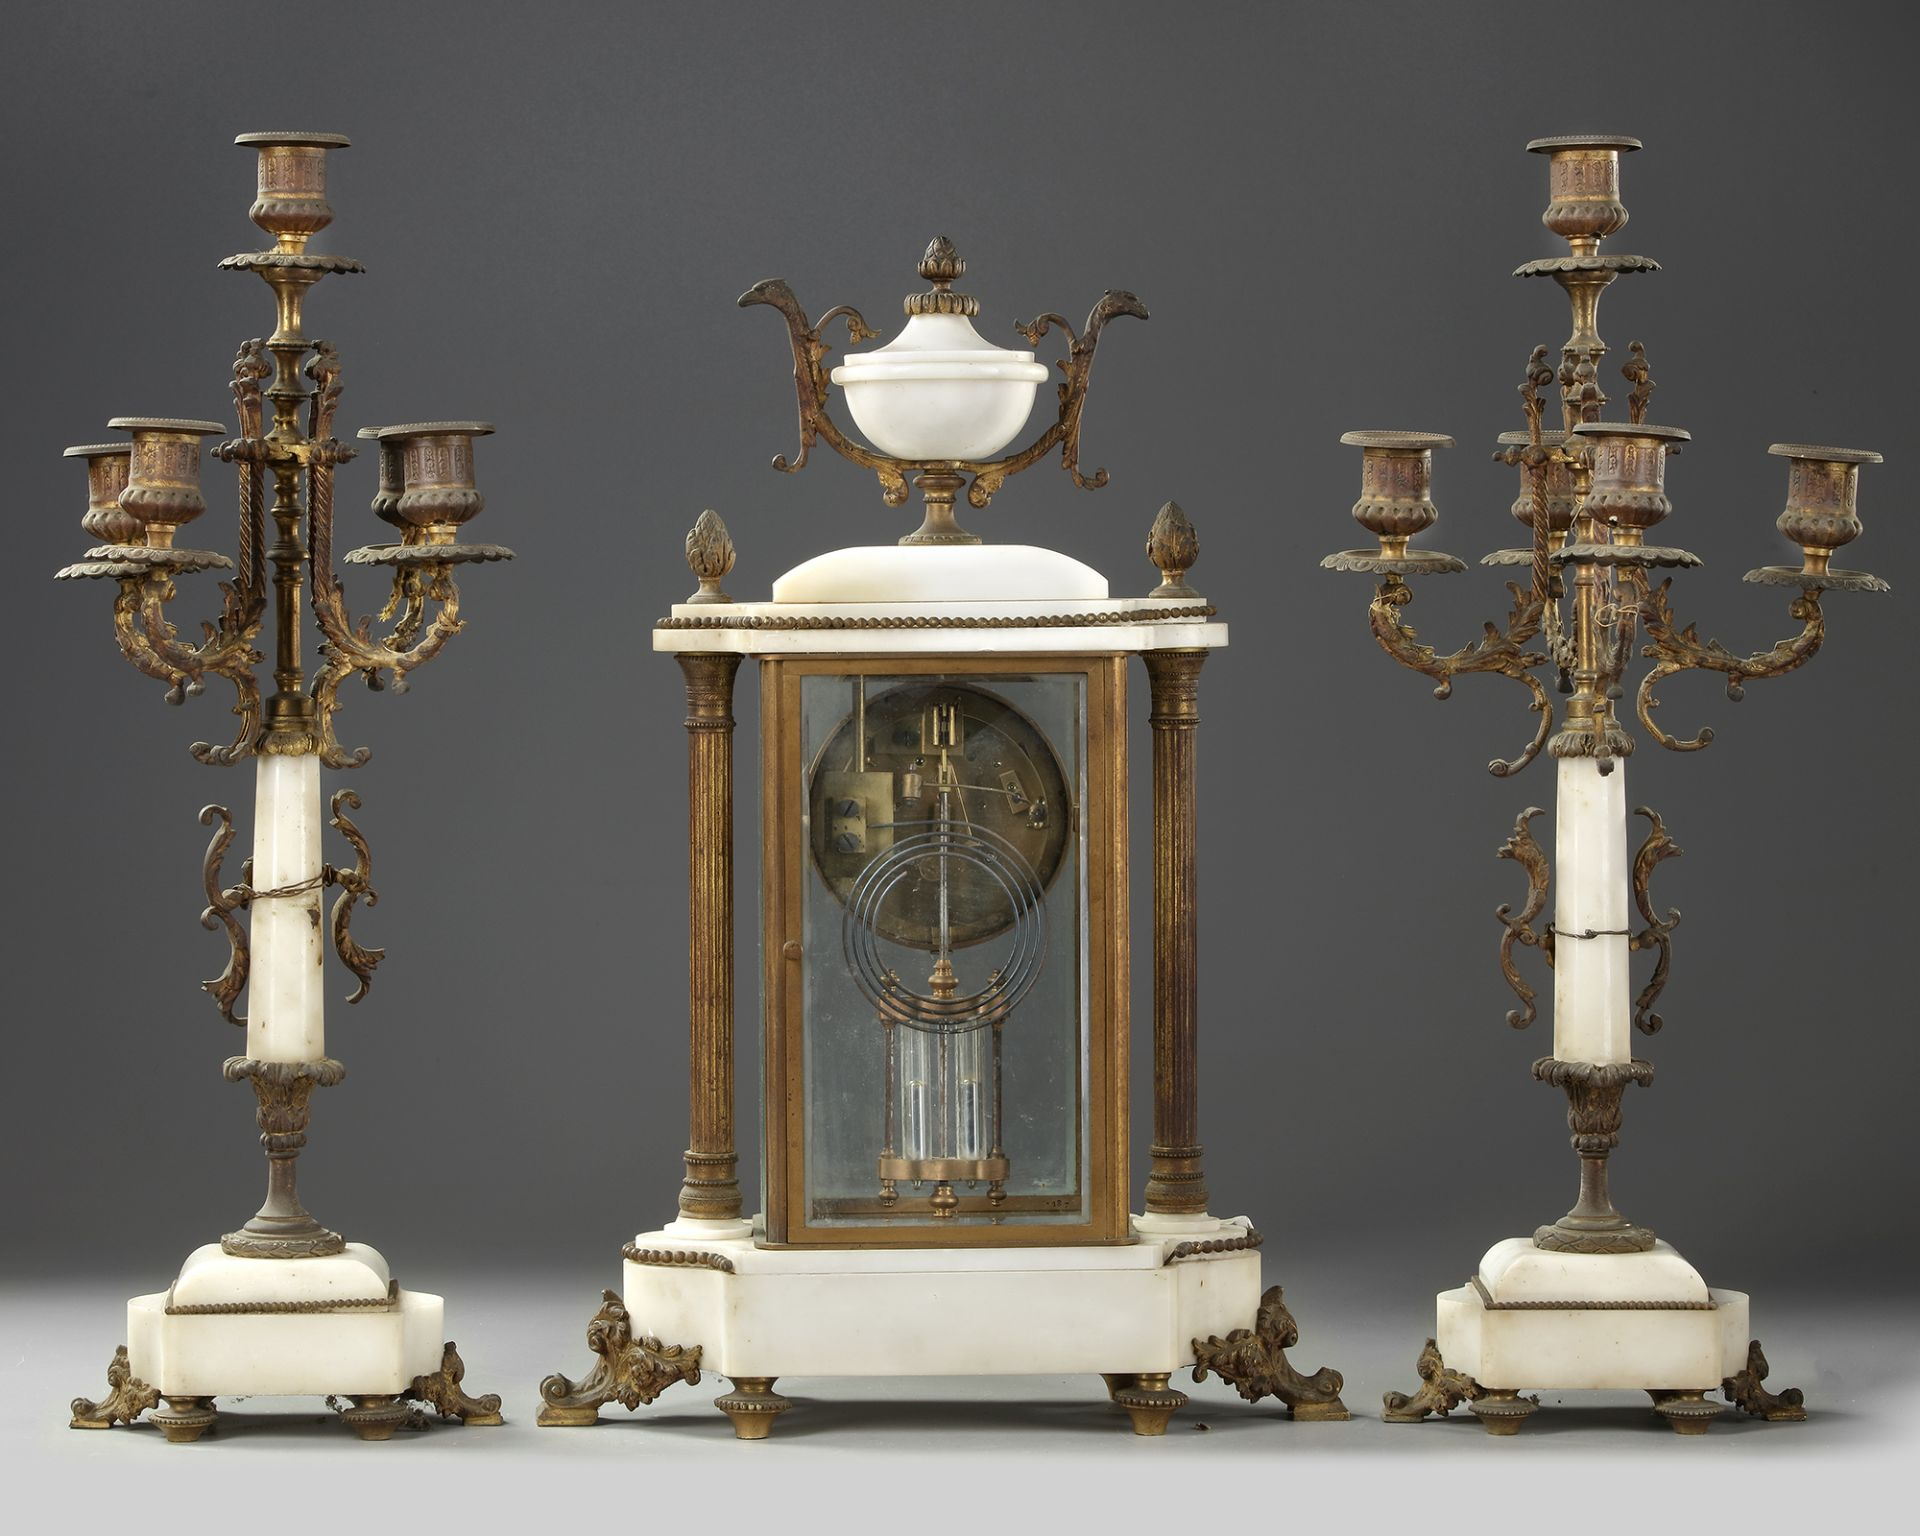 A FRENCH CLOCK SET, LATE 19TH CENTURY - Image 4 of 5